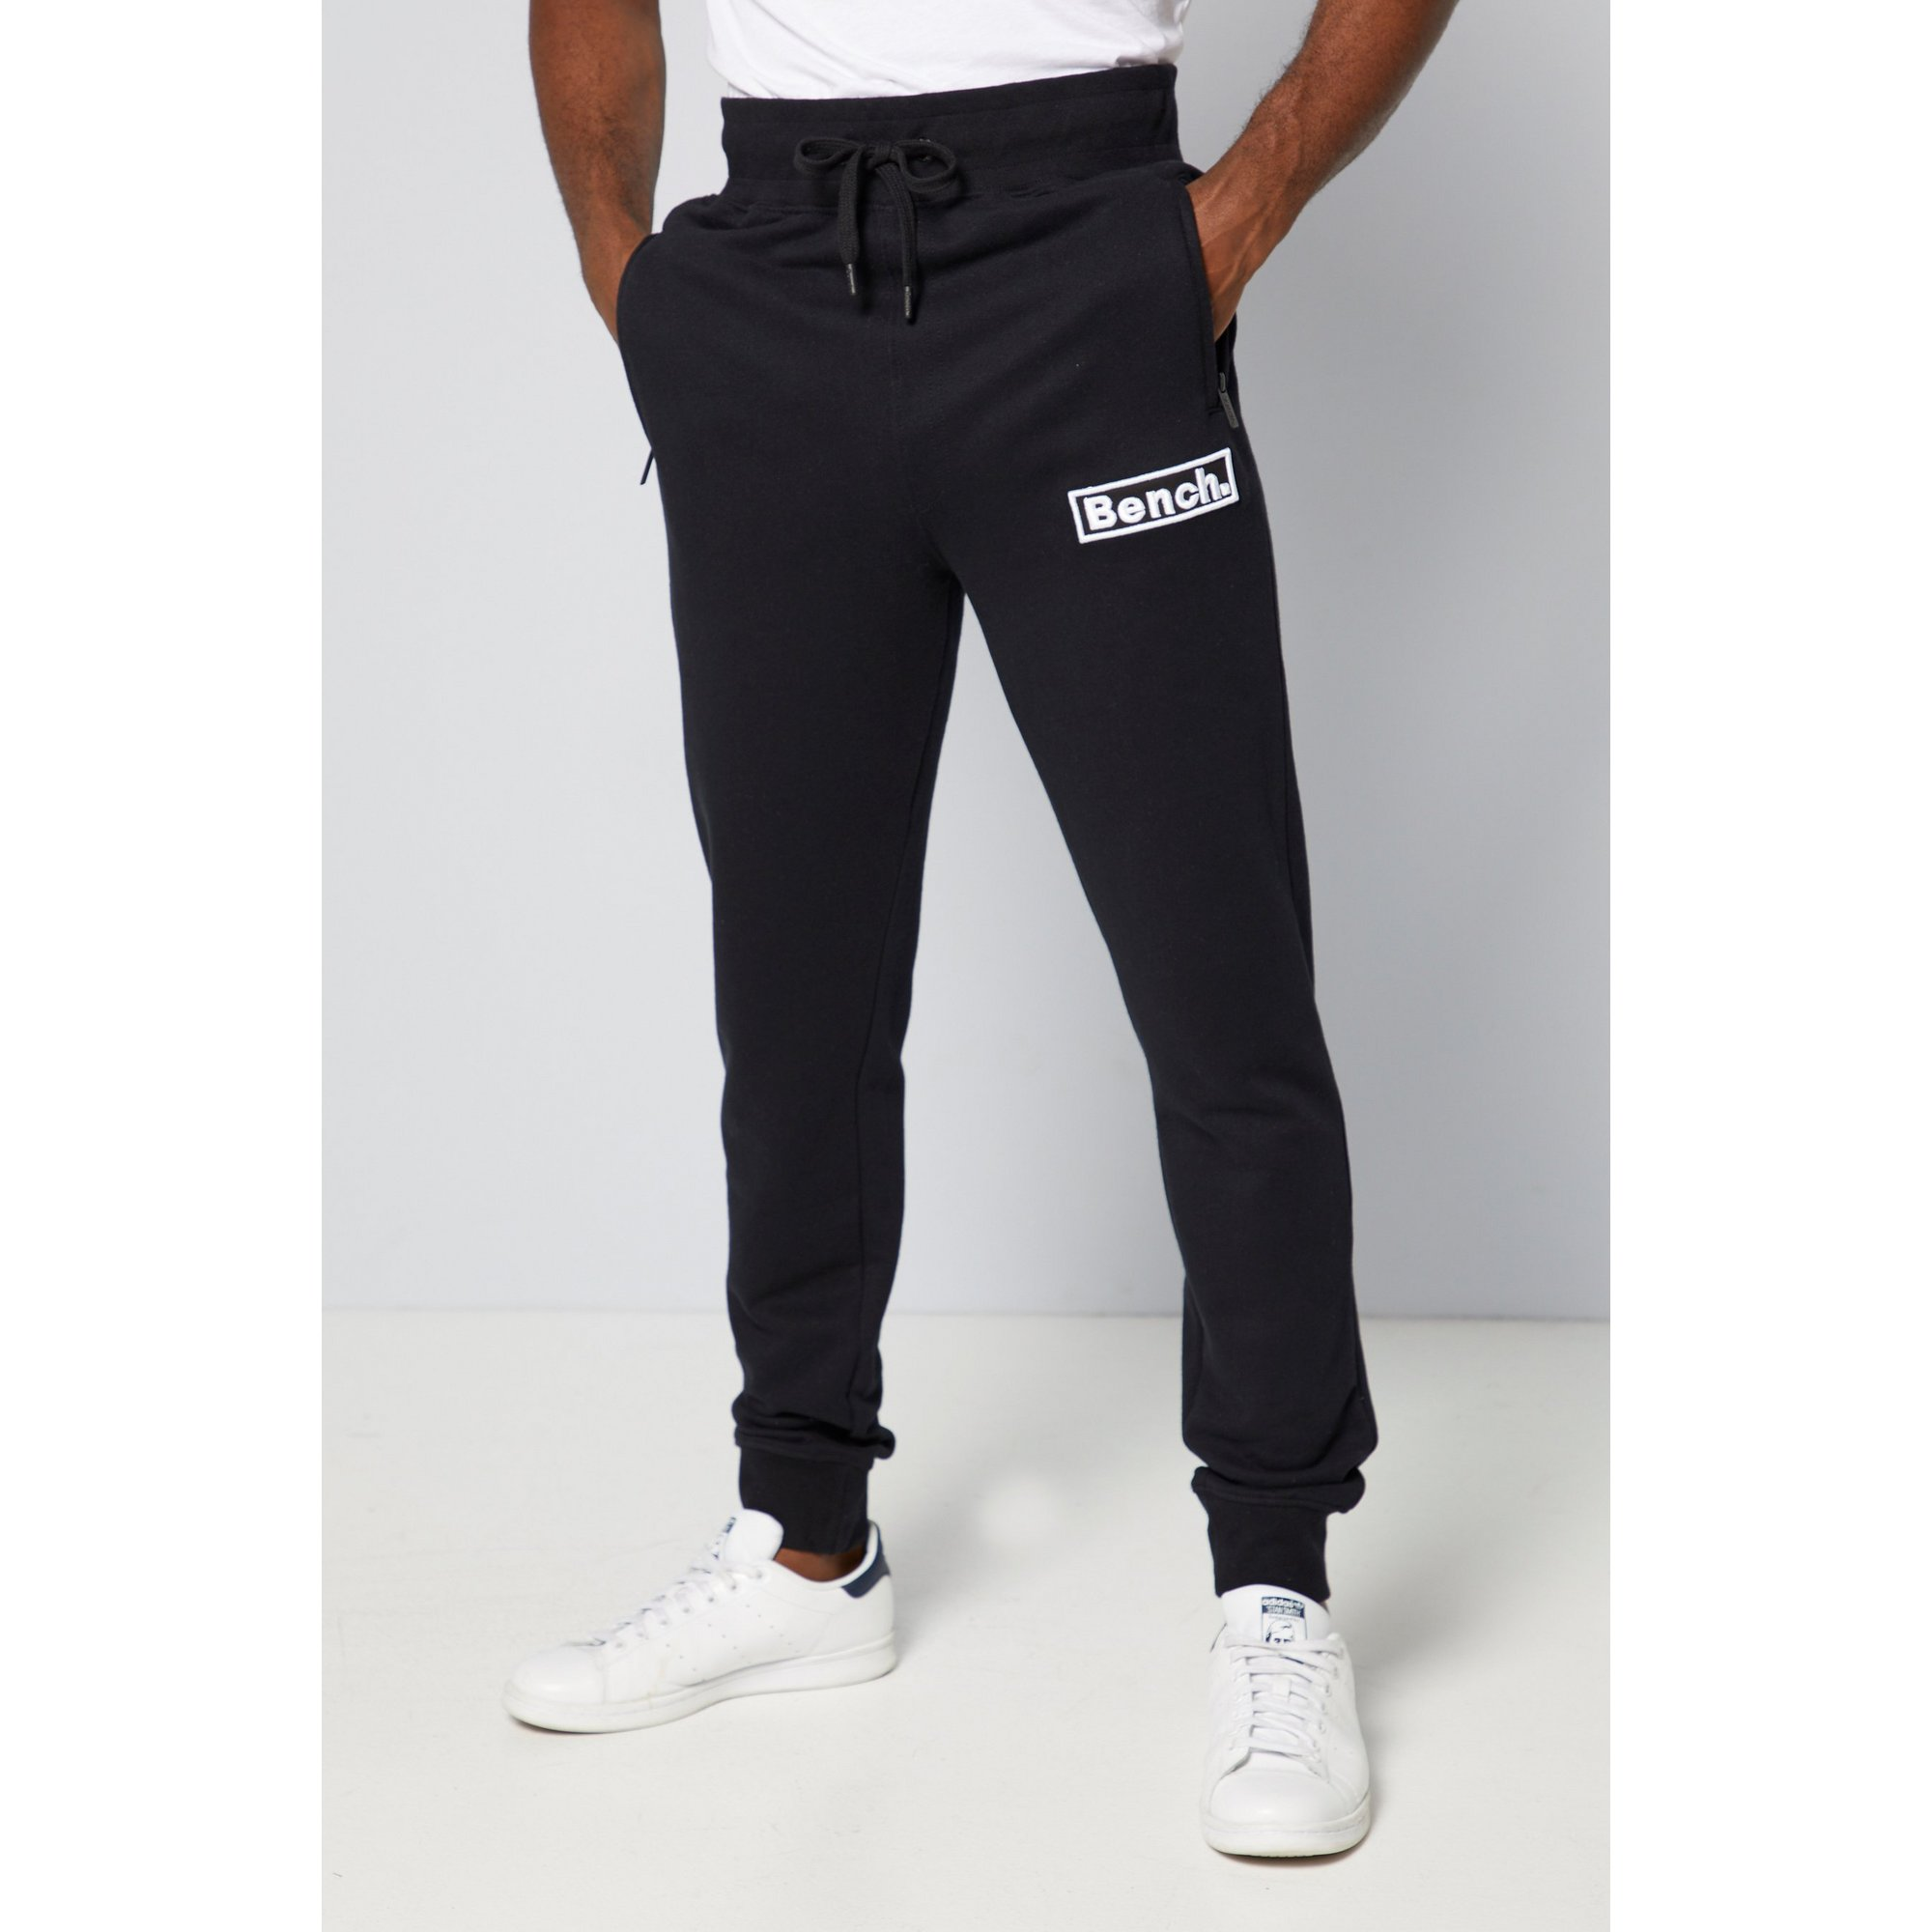 Image of Bench Black Joggers